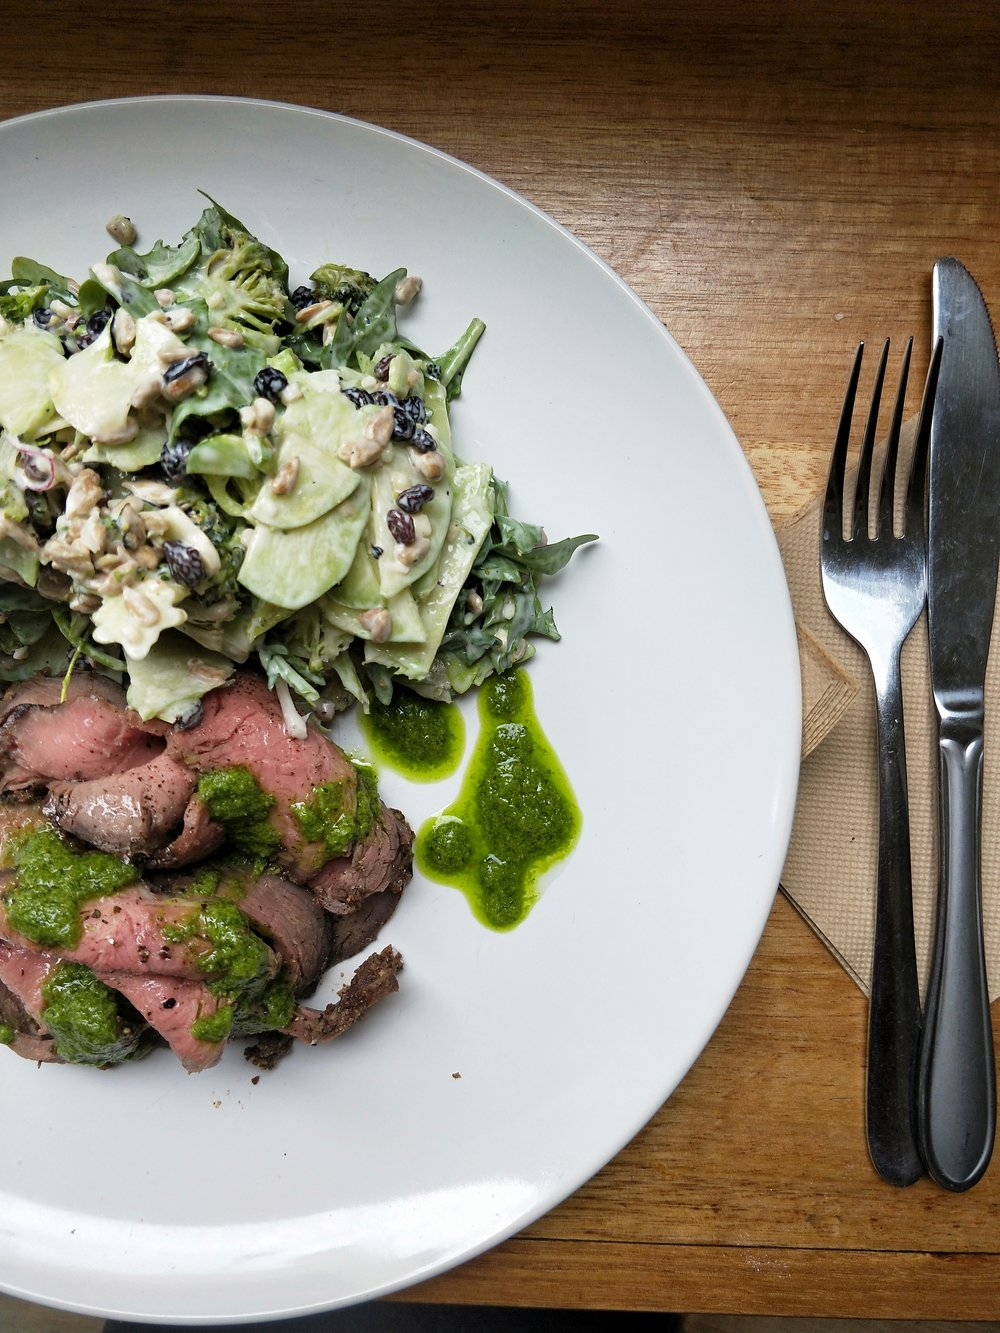 Meat Special Spit Roast Sirloin w/ Raw Broccoli and Horseradish